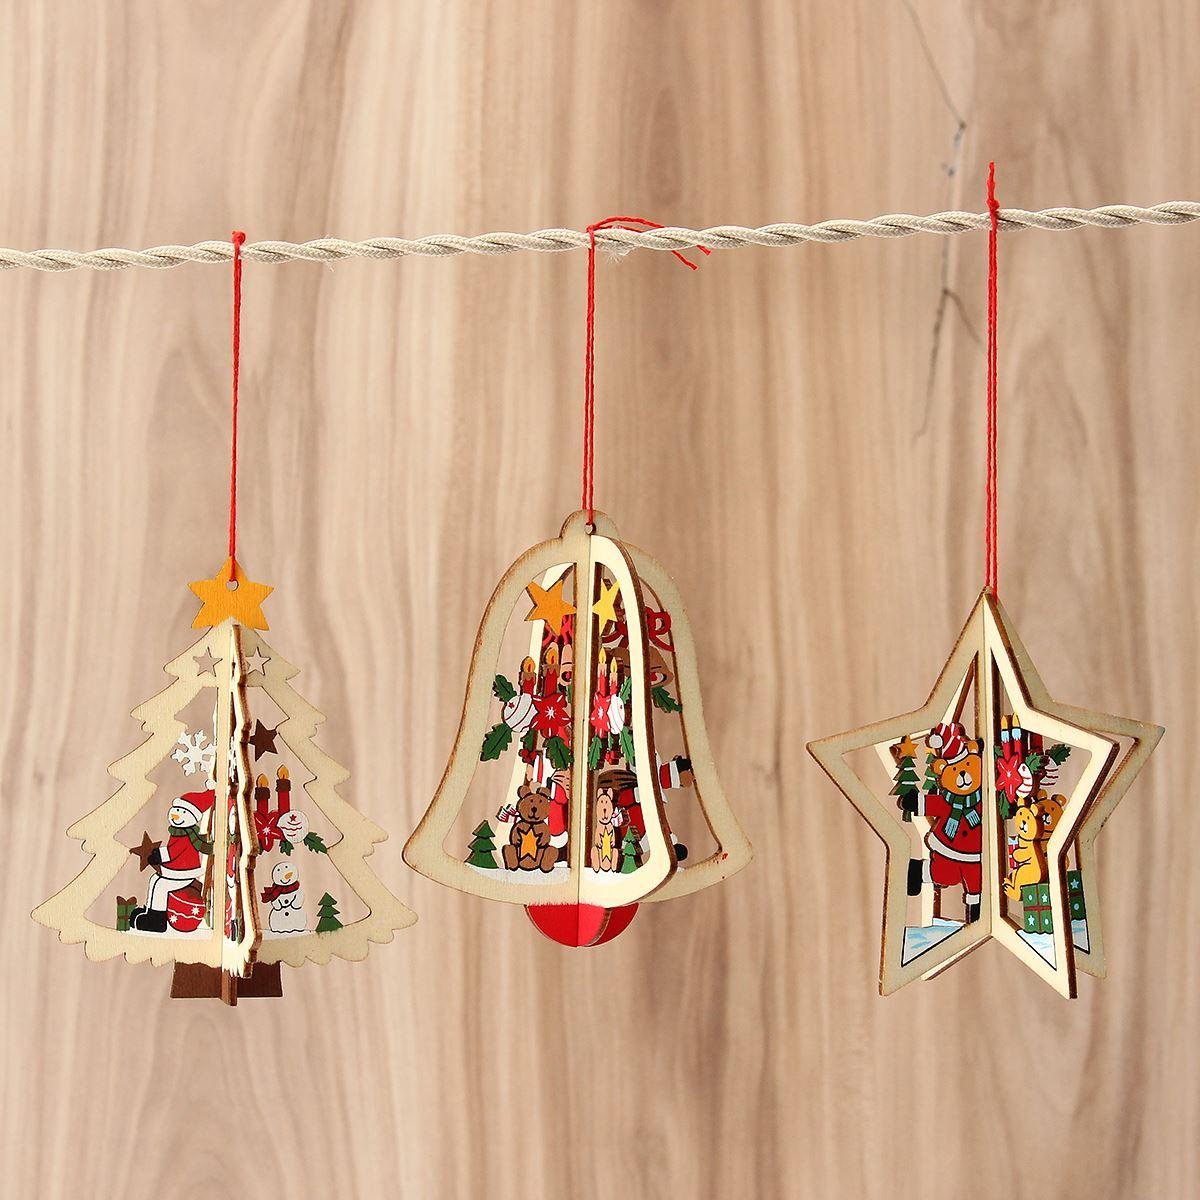 wholesale christmas decoration wood xmas tree star bell hanging decor christmas three dimensional decoration for home wooden xmas tree wooden xmas - Wooden Christmas Decorations Wholesale